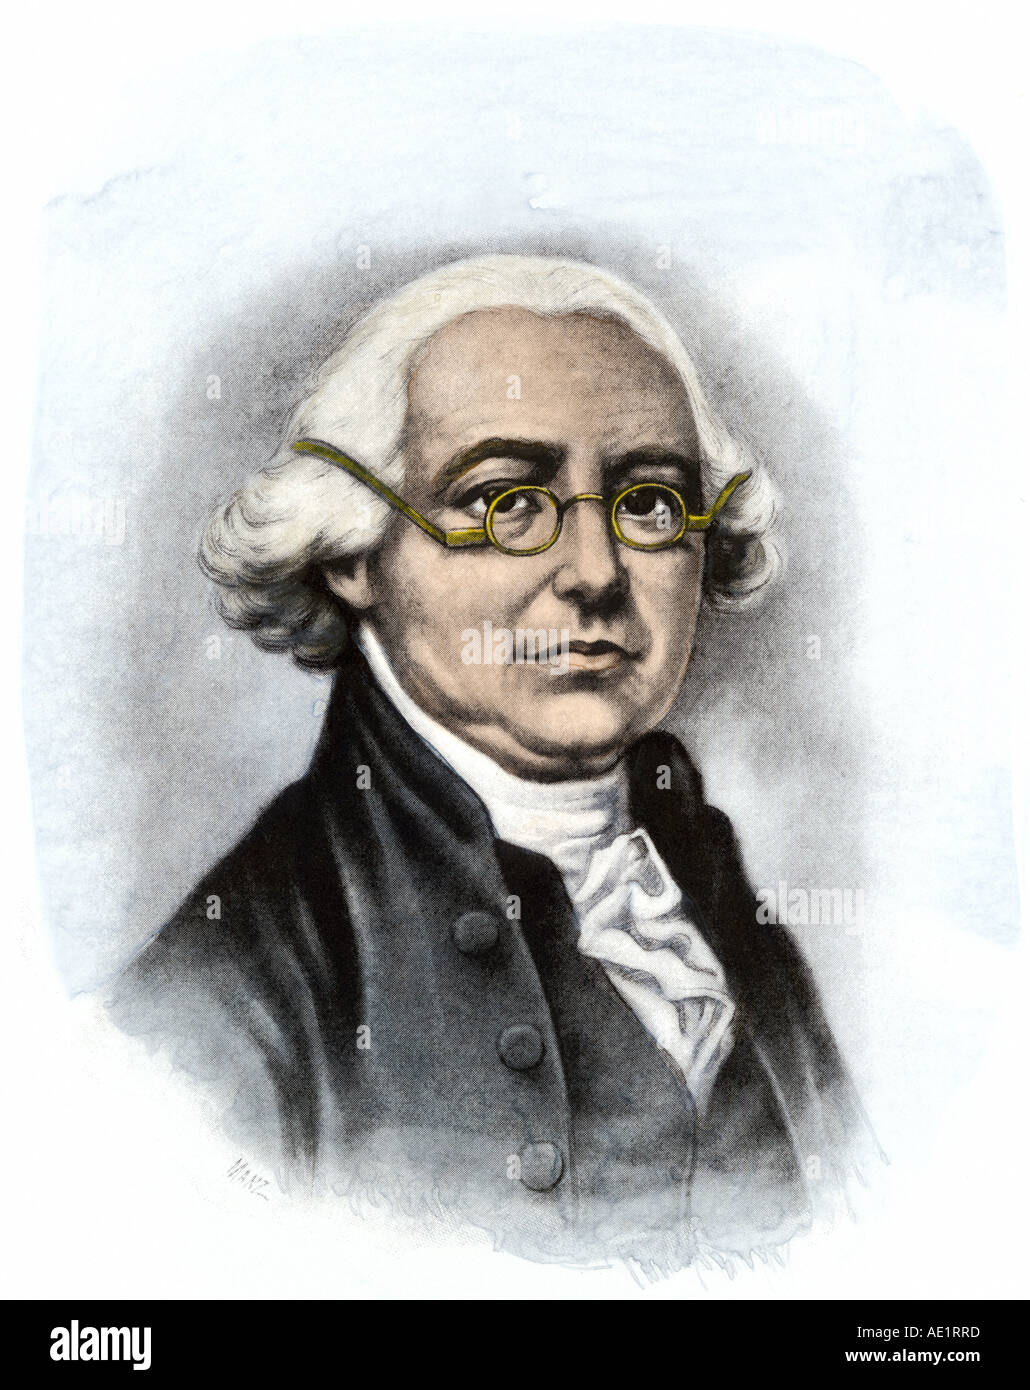 James Wilson a signer of the Declaration of Independence from Pennsylvania. Hand-colored halftone of an illustration - Stock Image